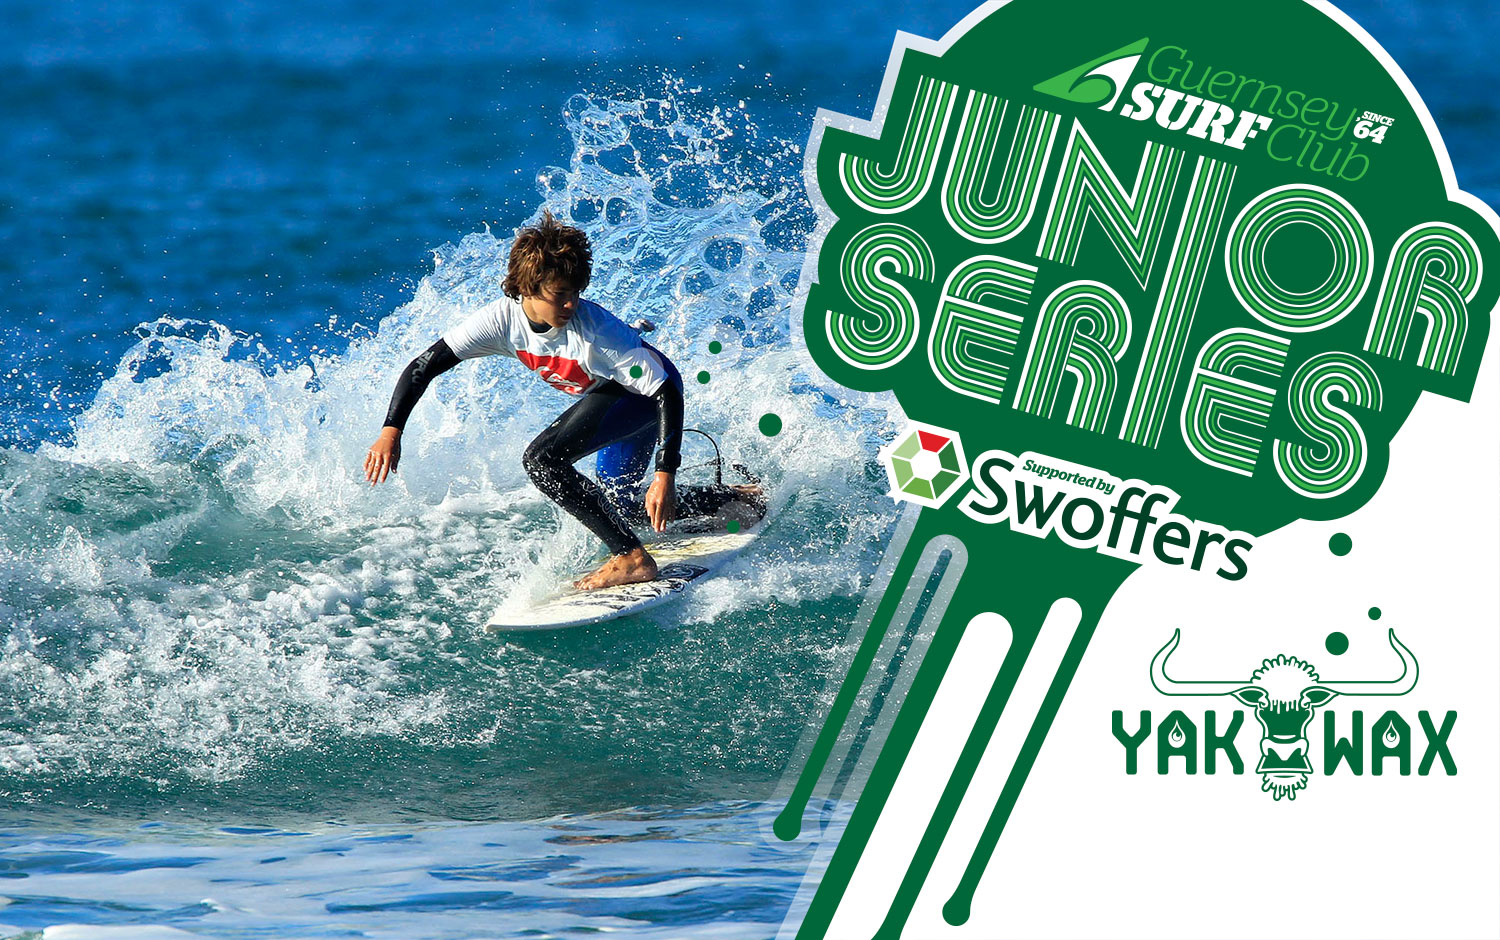 Introducing The Junior Series